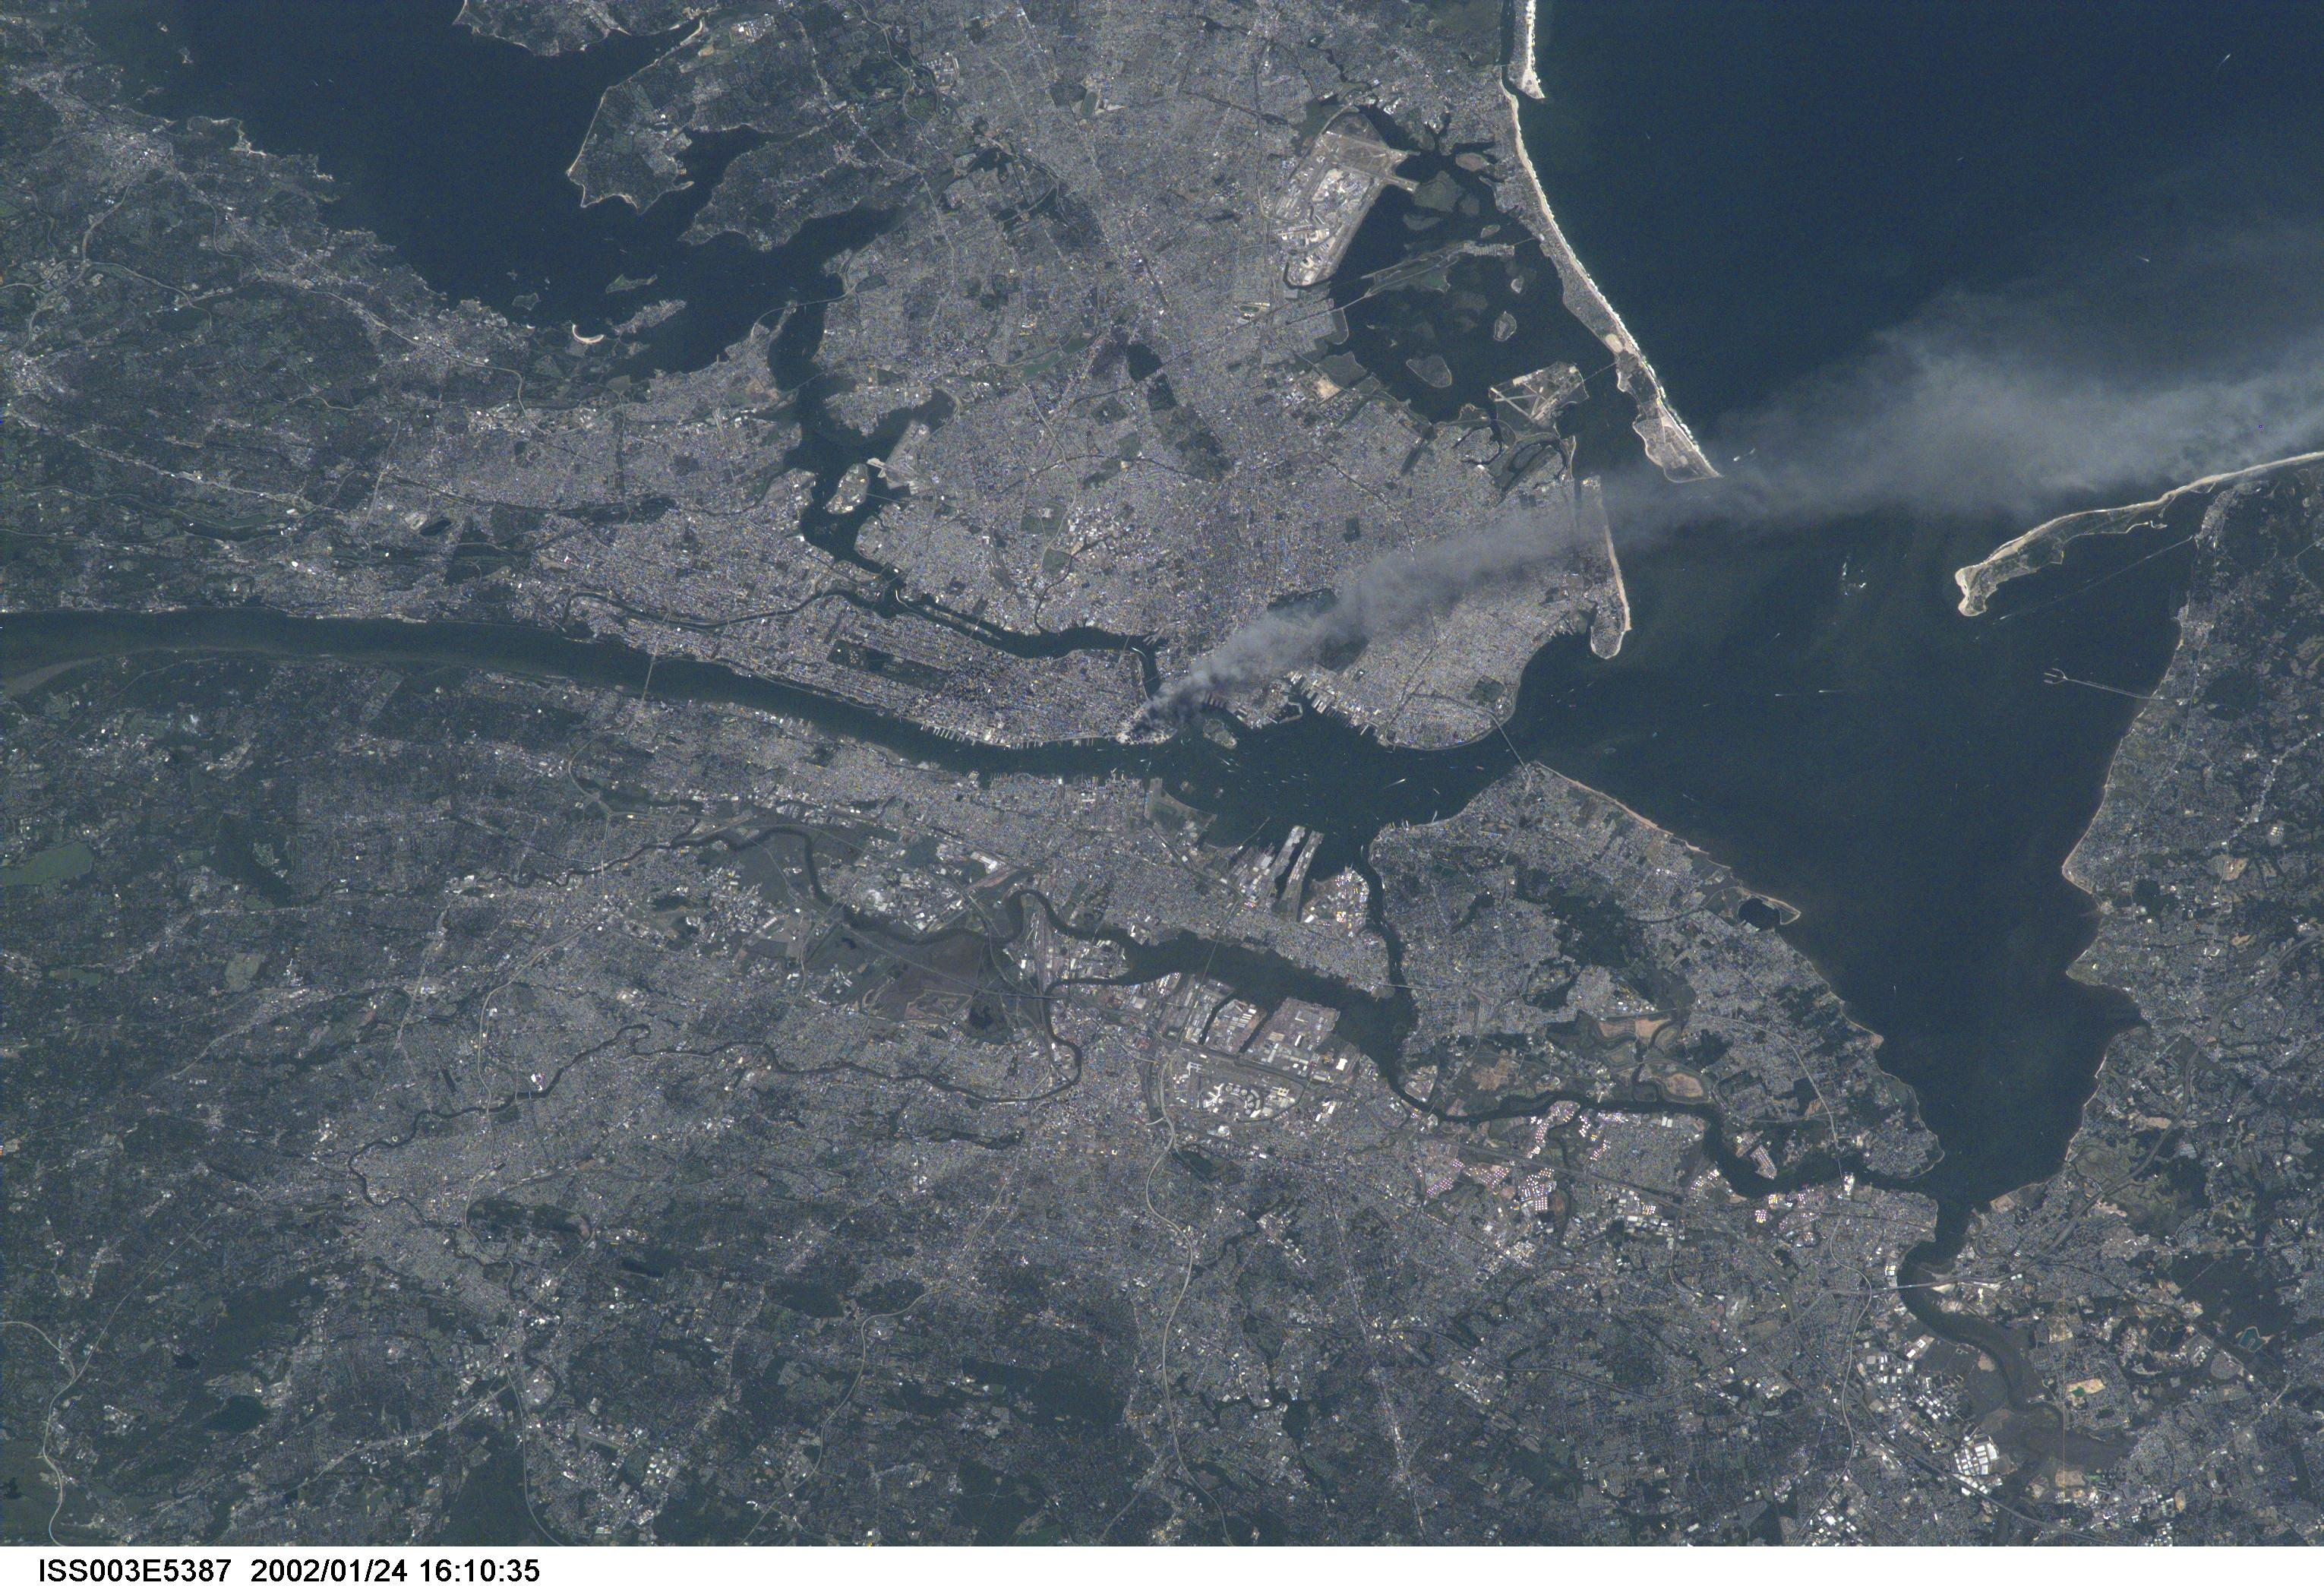 Photo of New York City from space on September 11, 2001